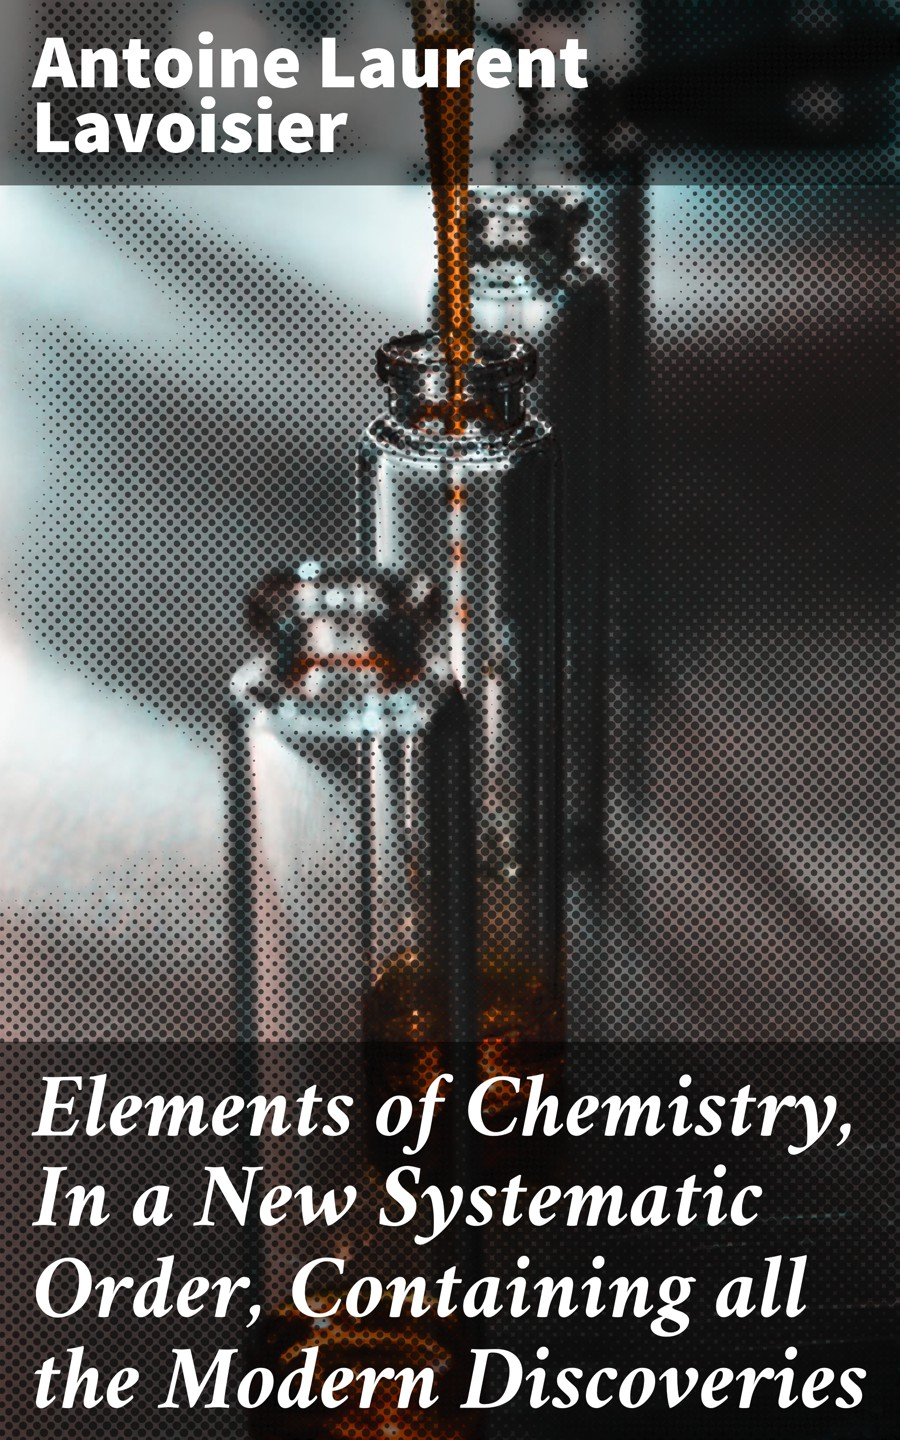 цена на Antoine Laurent Lavoisier Elements of Chemistry, In a New Systematic Order, Containing all the Modern Discoveries